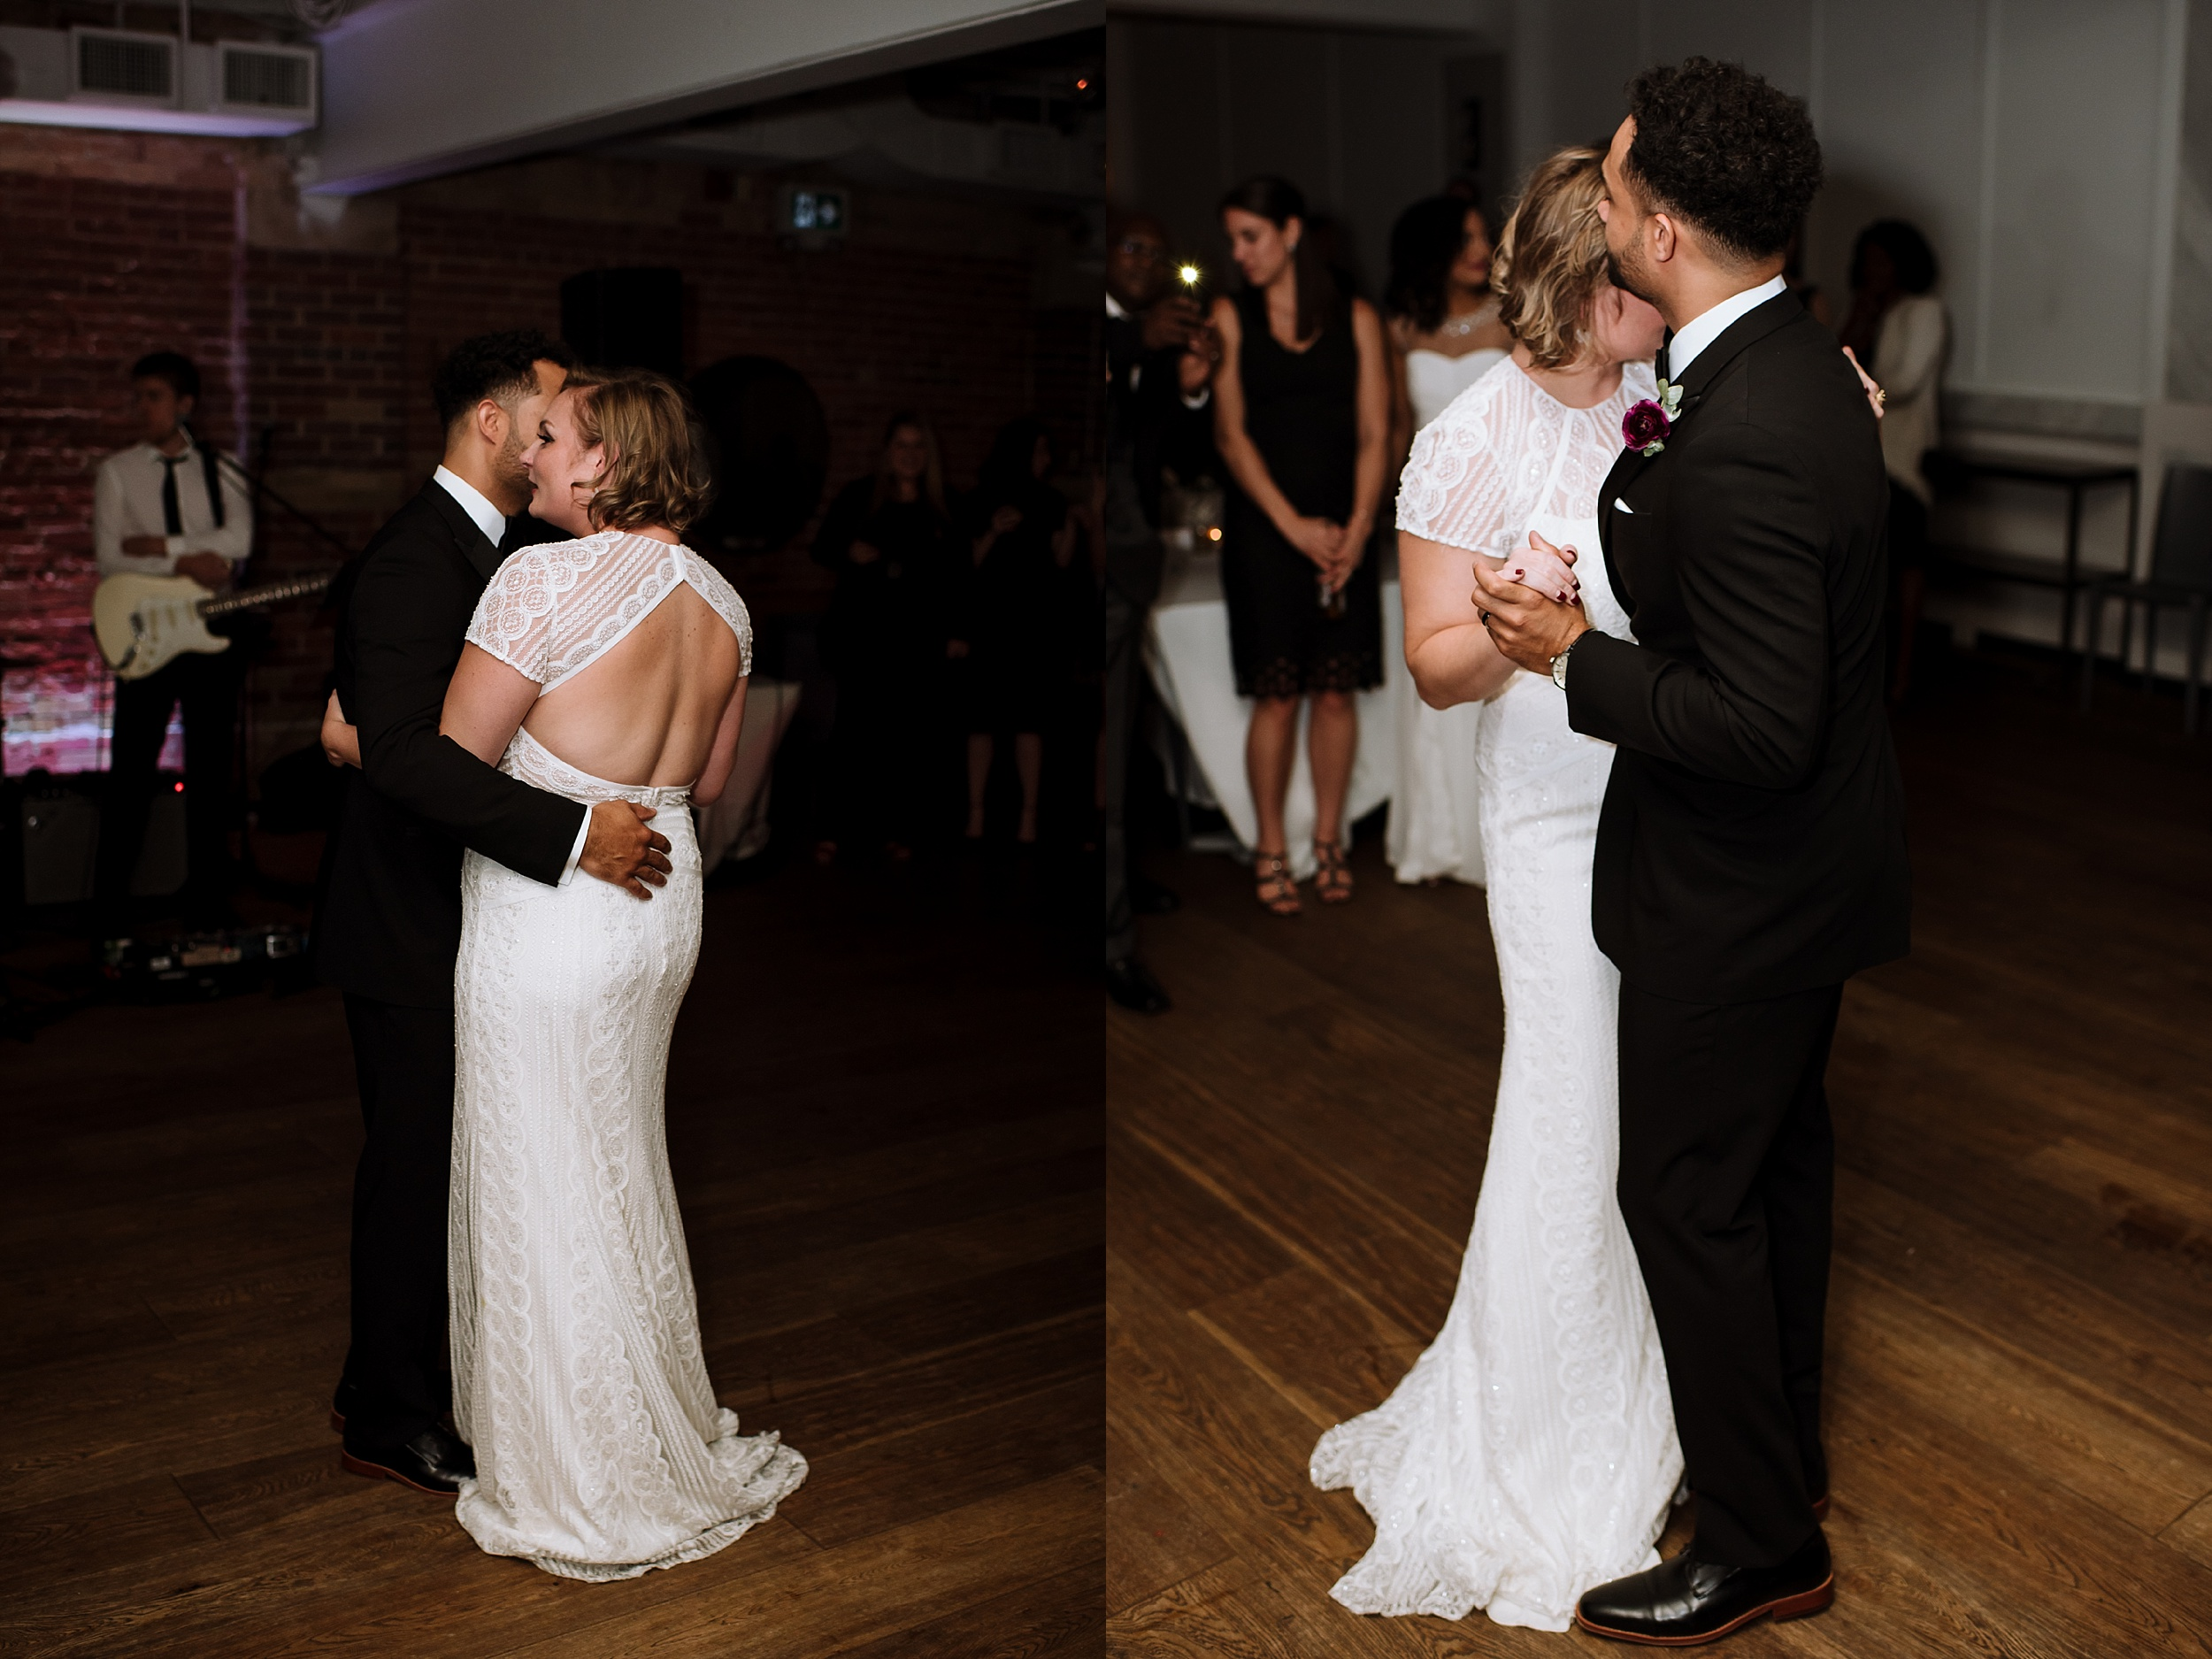 Broadview_Hotel_Wedding_Toronto_Photographer_0054.jpg